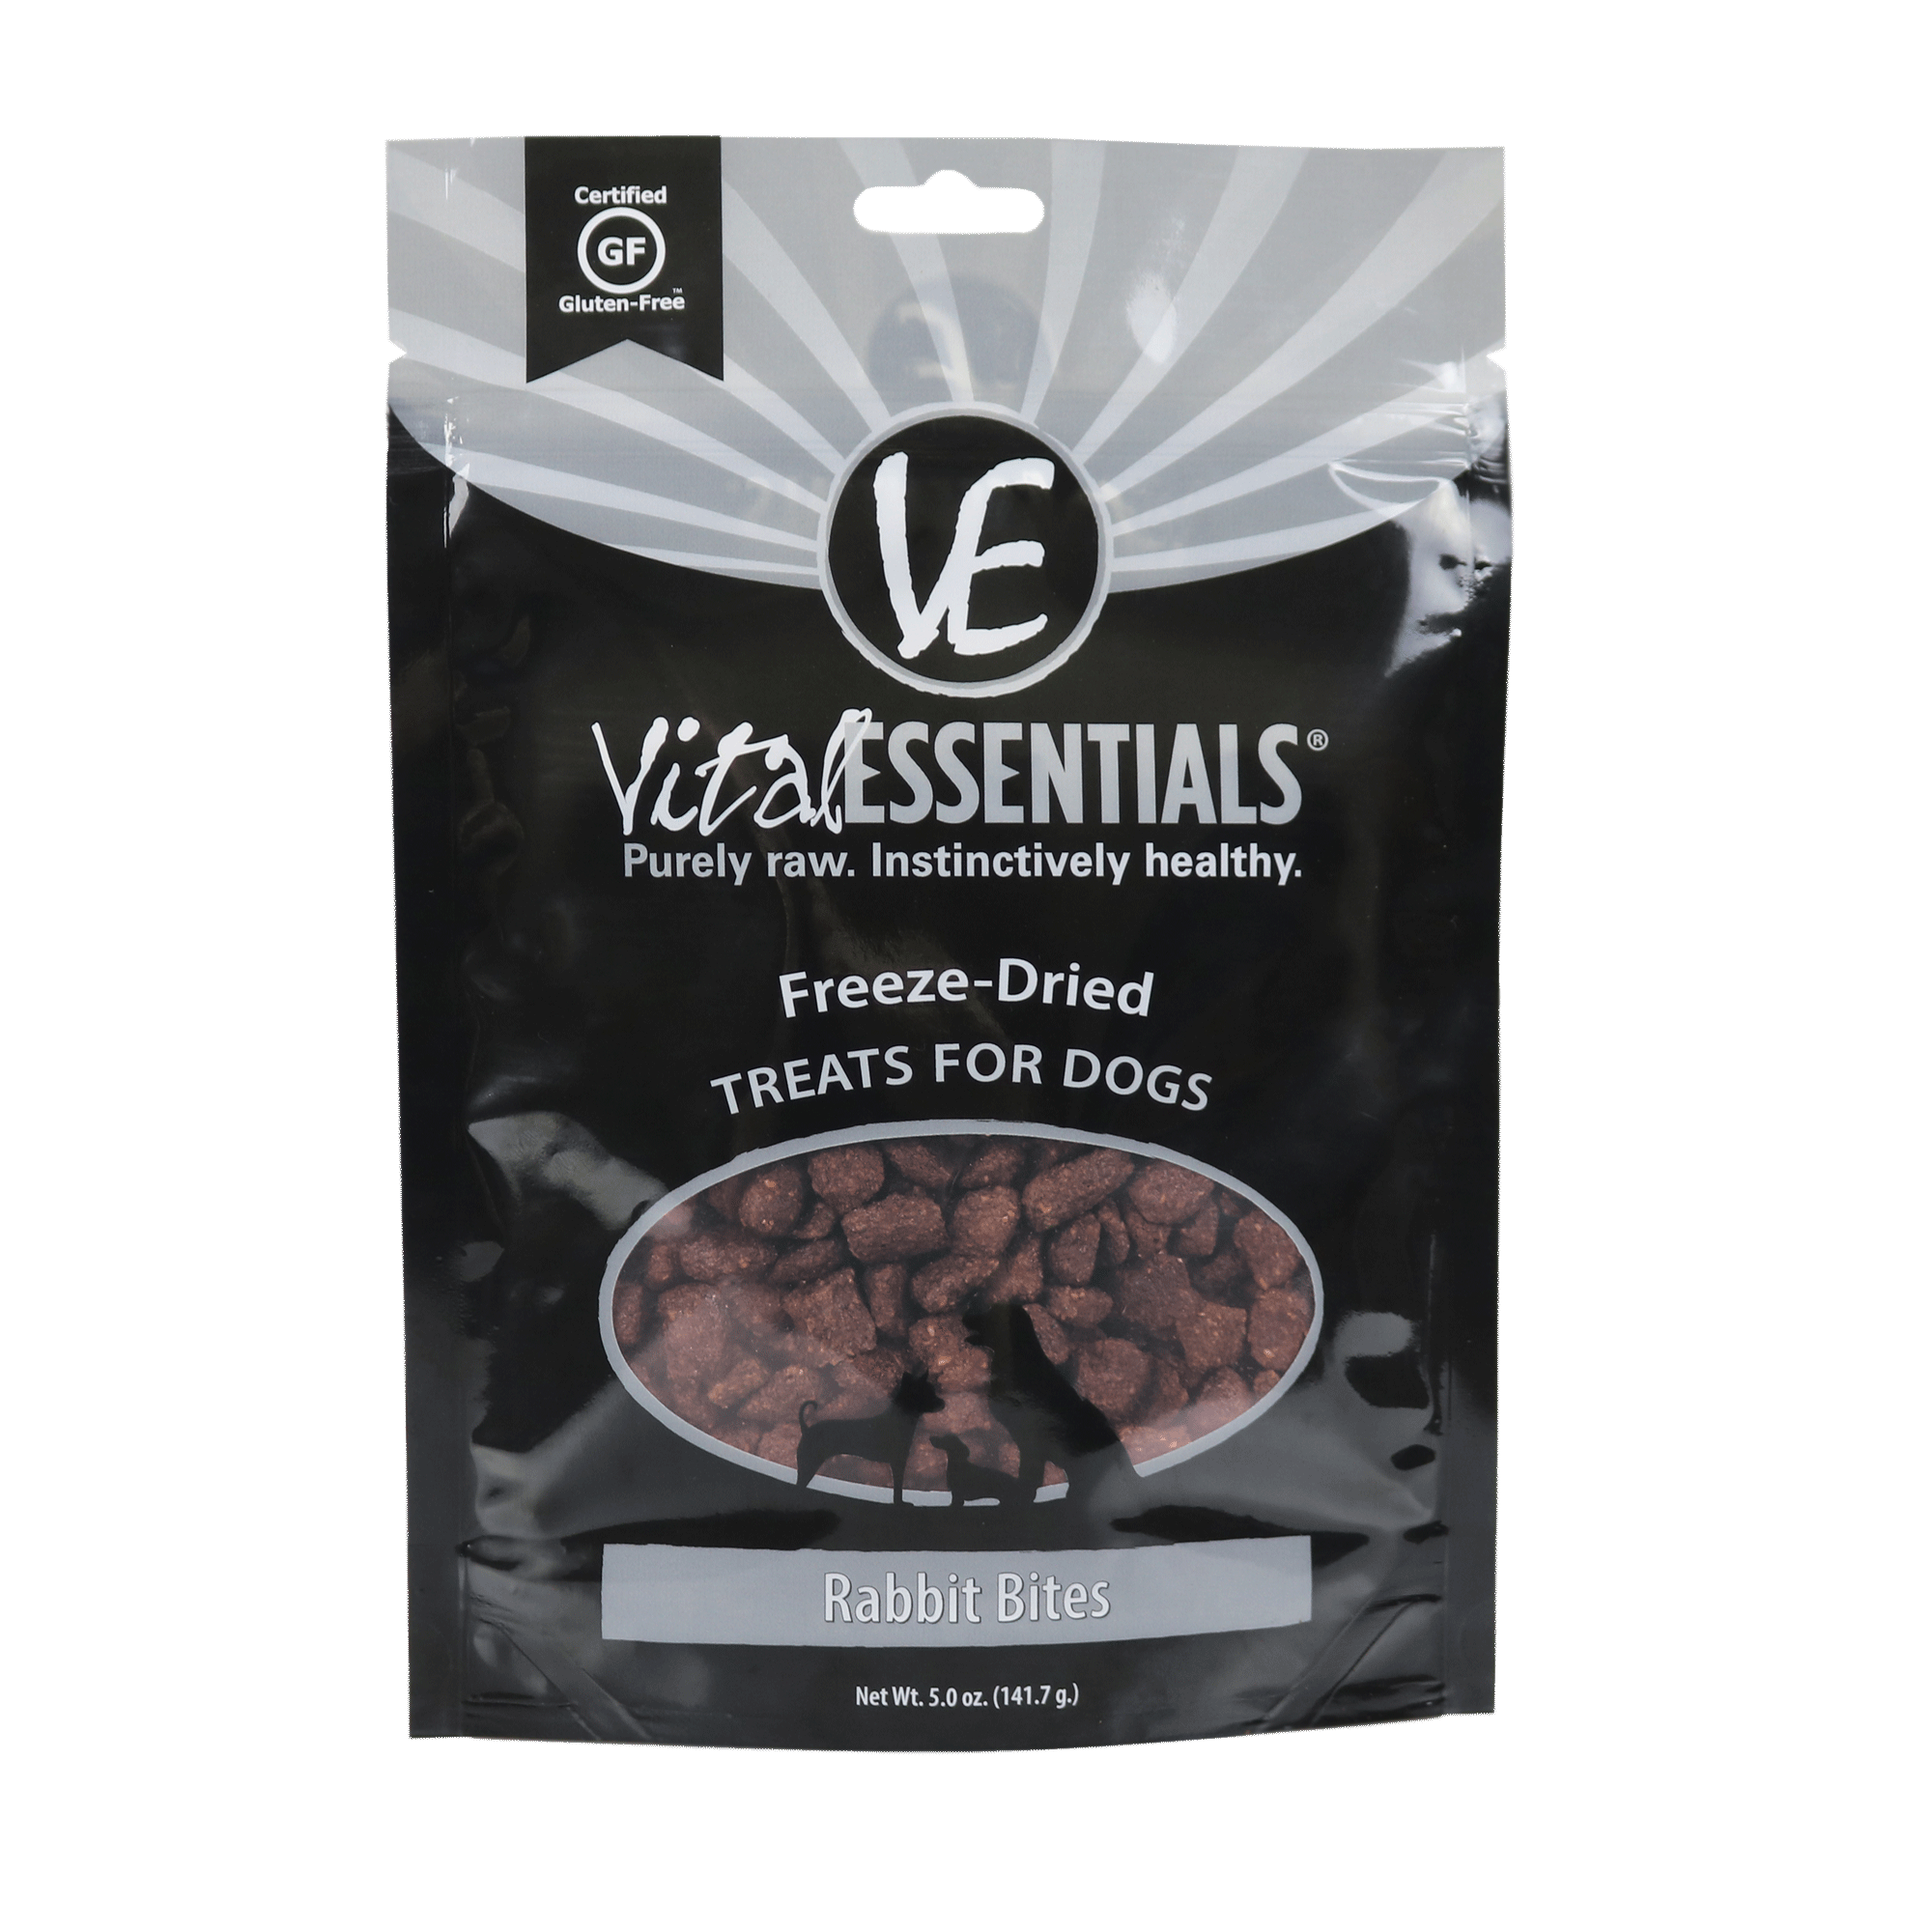 Vital Essentials Rabbit Bites Freeze-Dried Dog Treats, 5-oz